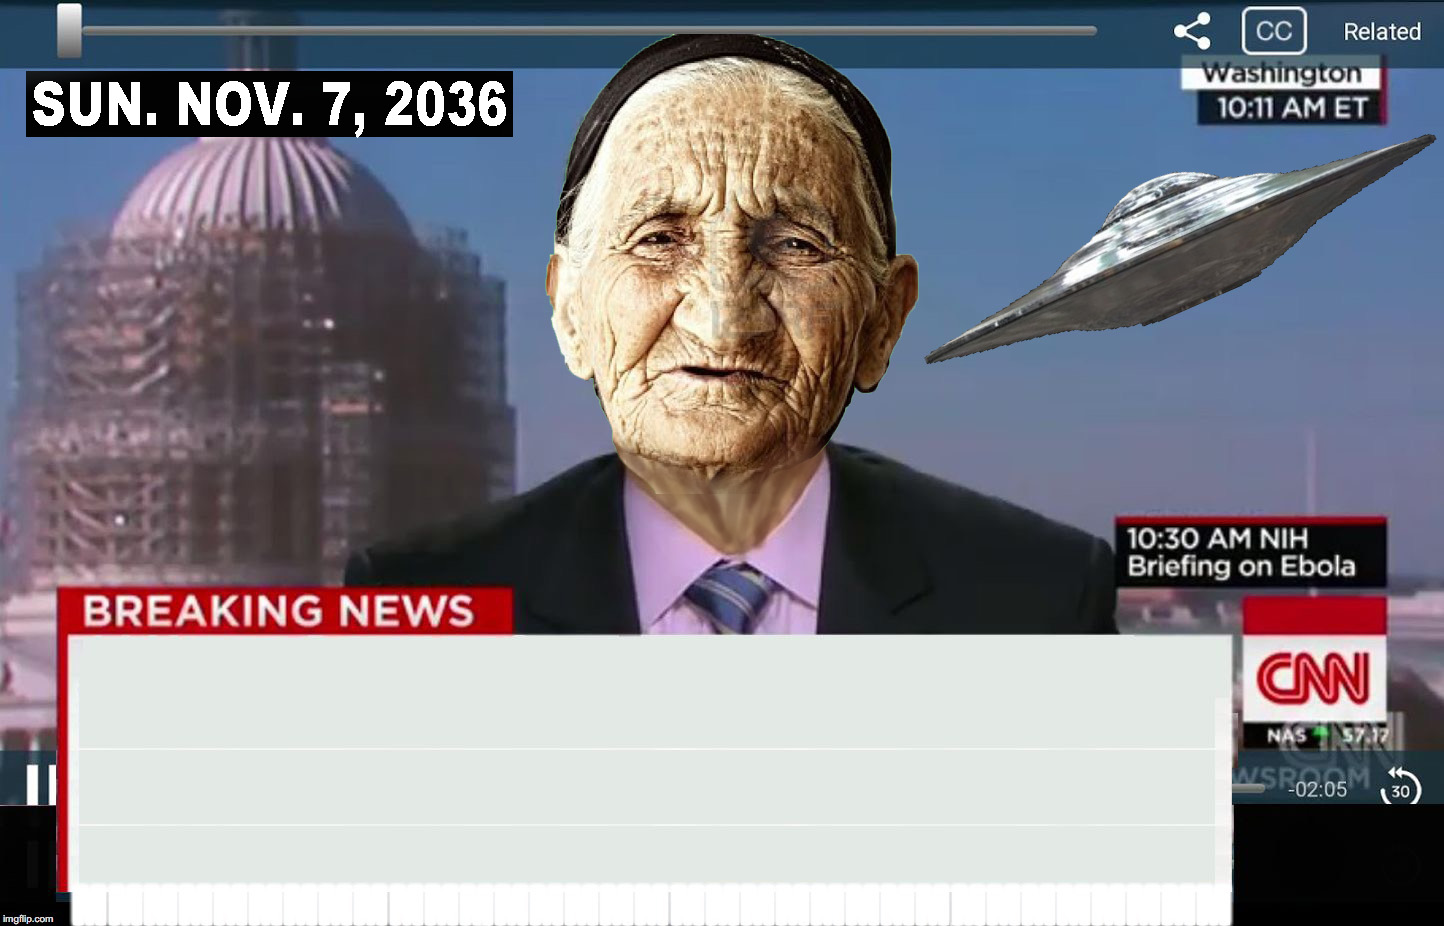 CNN in the future Meme Template